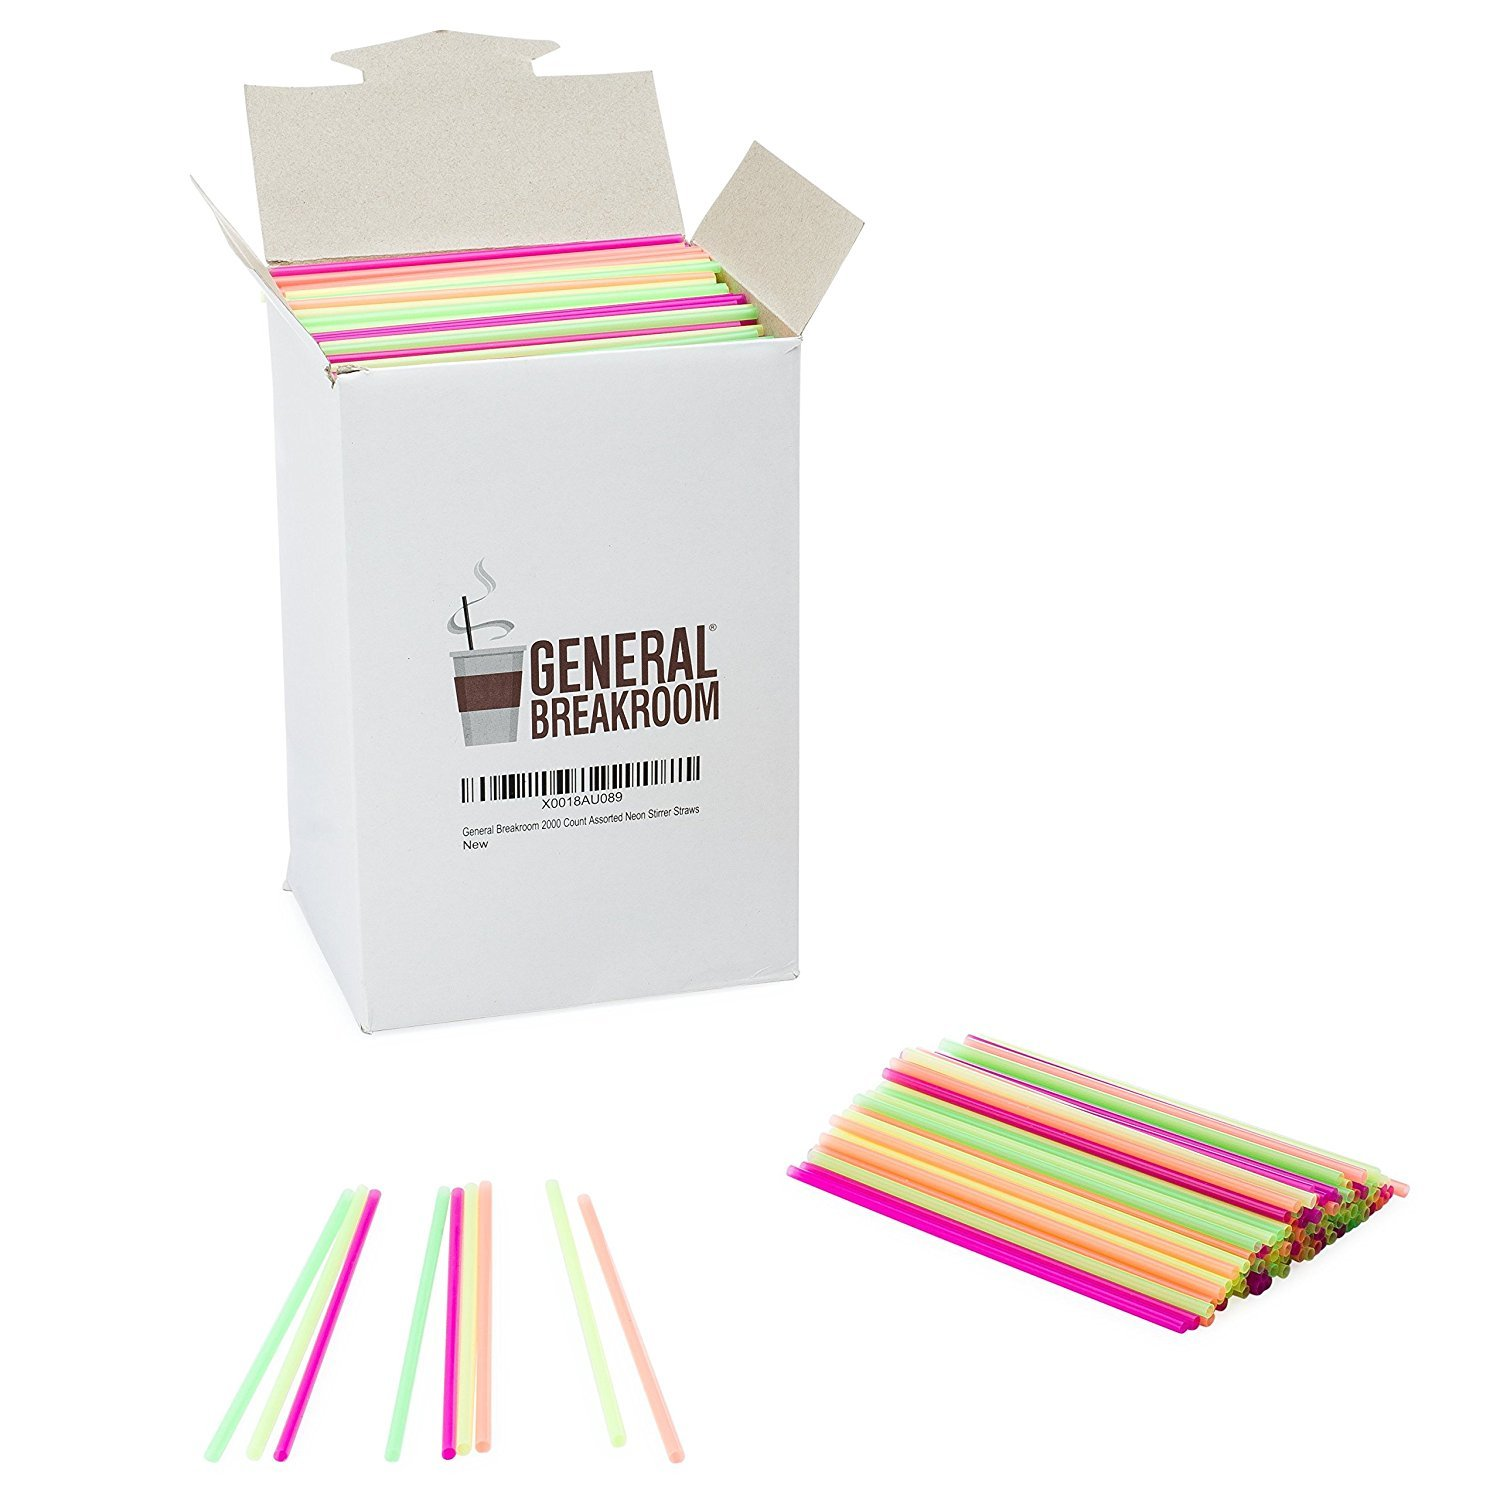 General Breakroom 2000-count, 5 1/2'' Coffee and Cocktail Drink Stirrer Straws, Assorted Neon, Pink, Yellow, Green, Orange